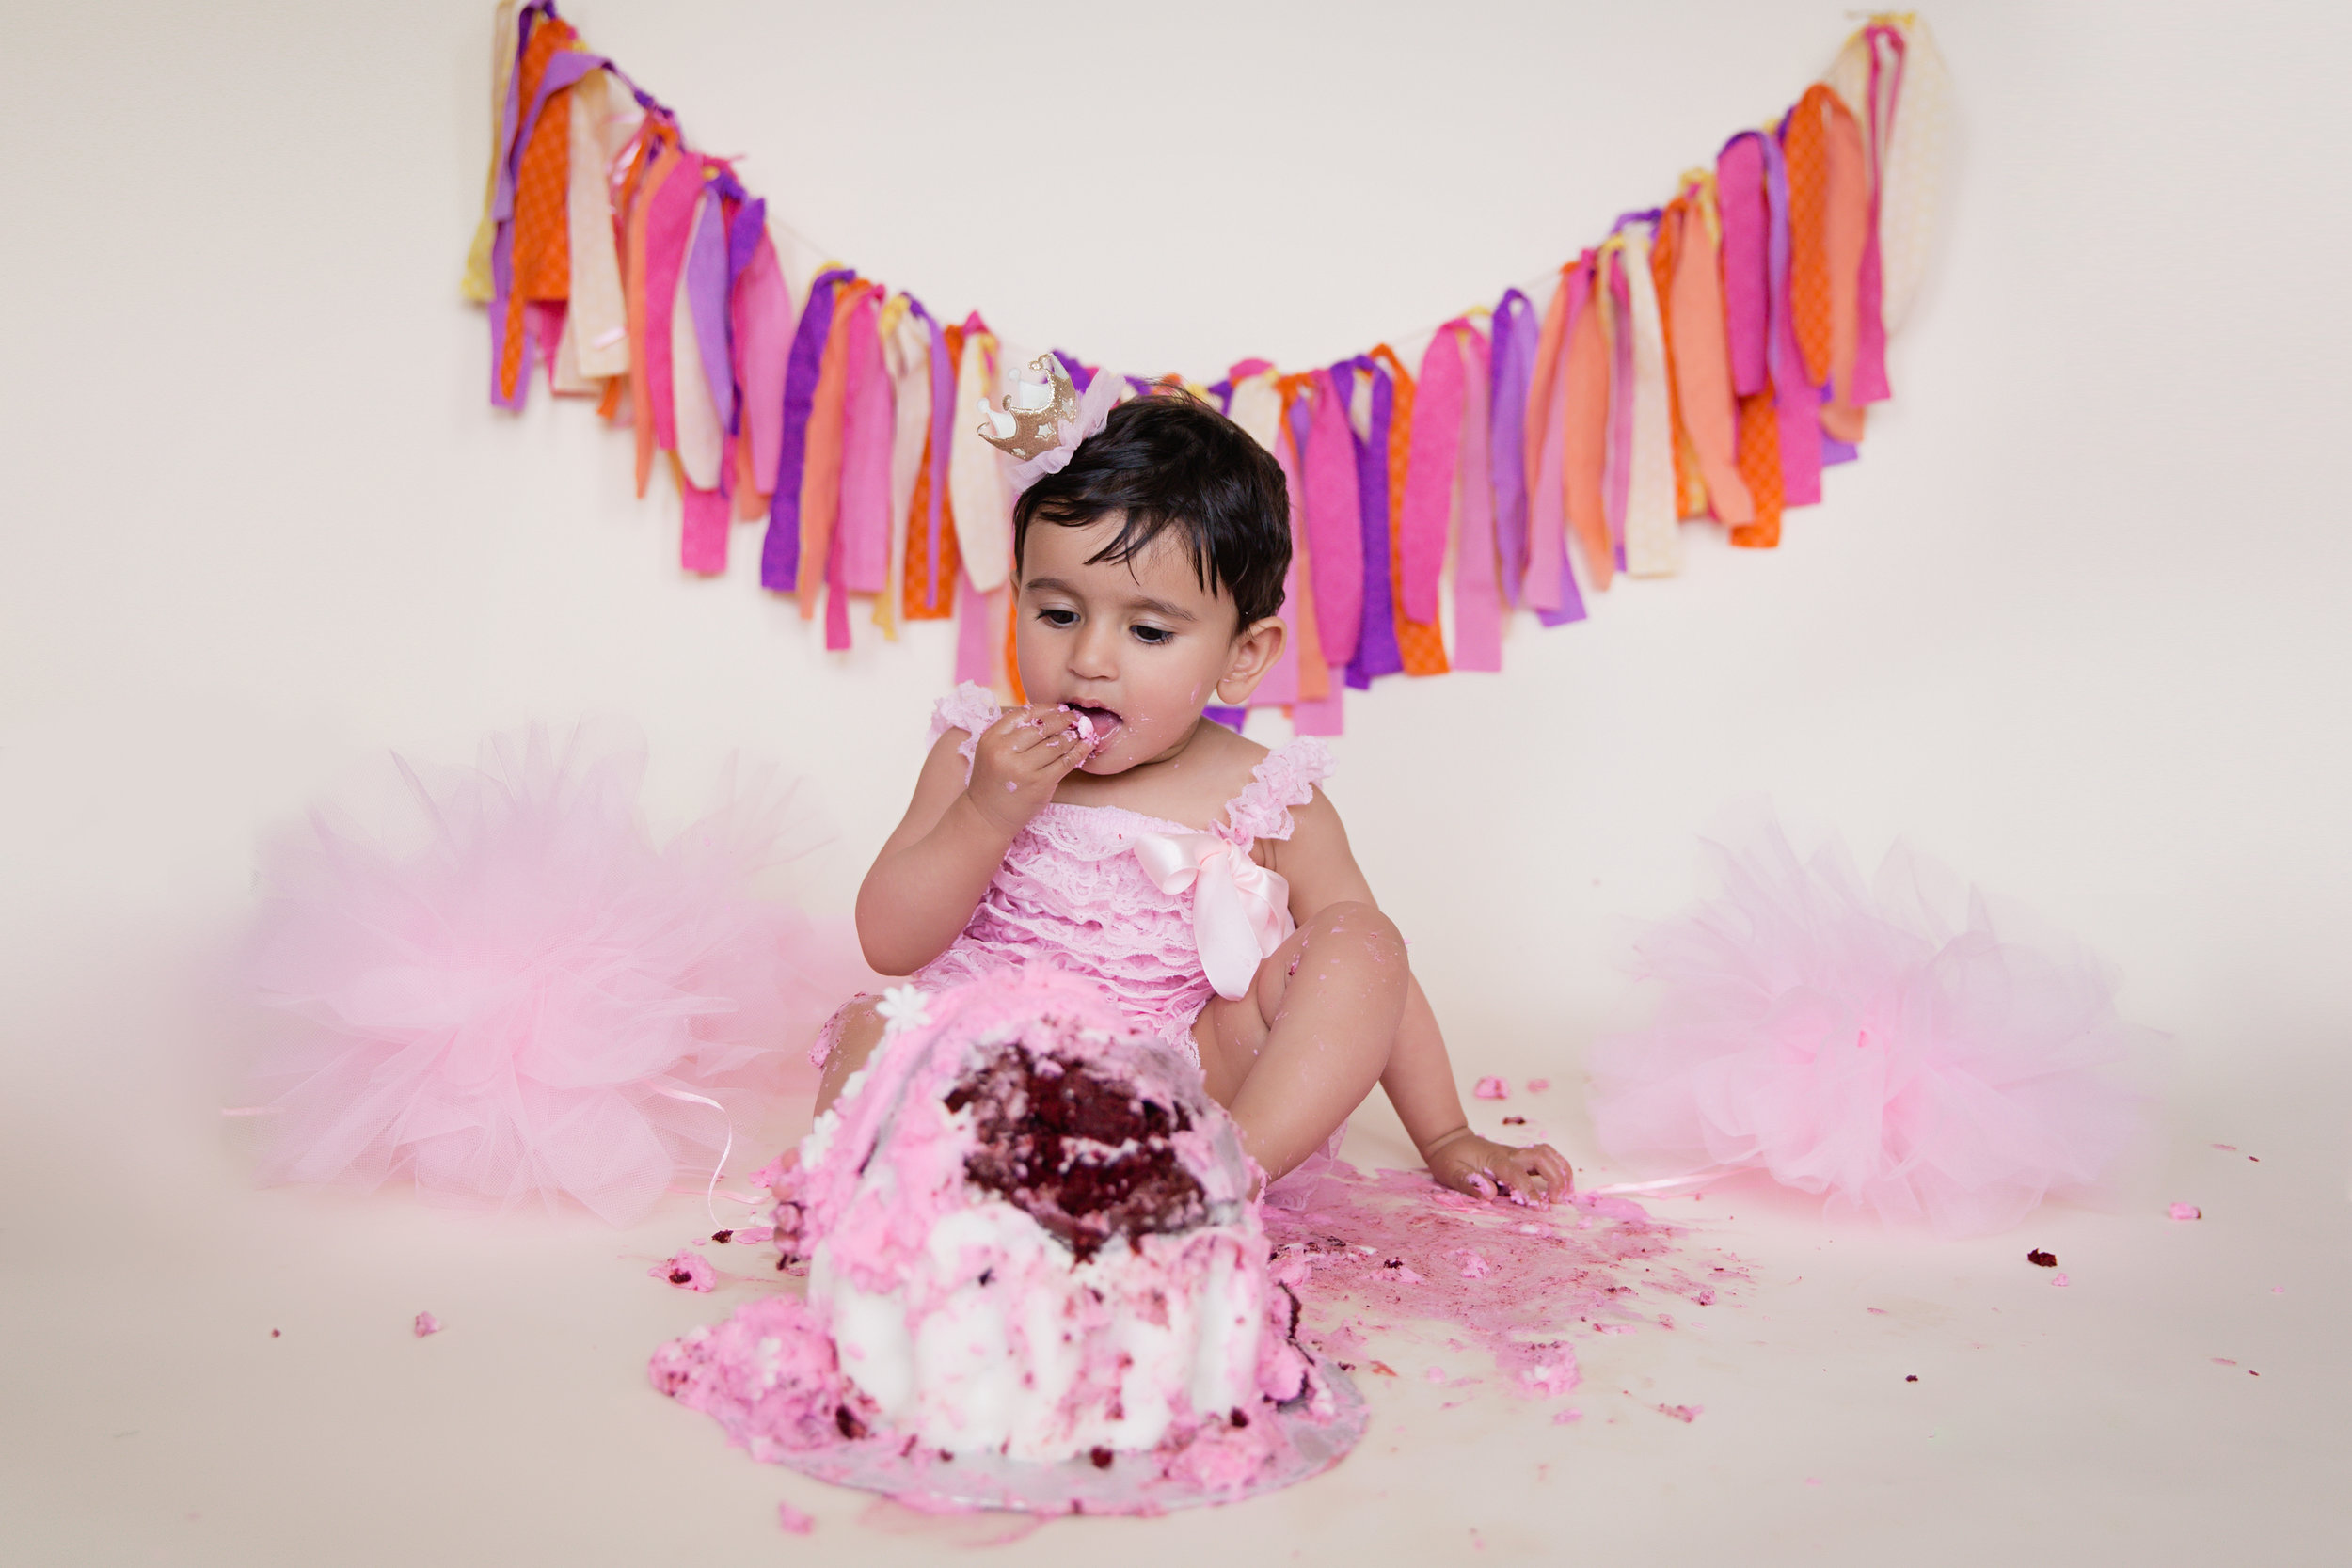 Birthday girl trying her cake. Cake Smash Photoshoot ideas. Calgary baby photographer. Milashka Photography